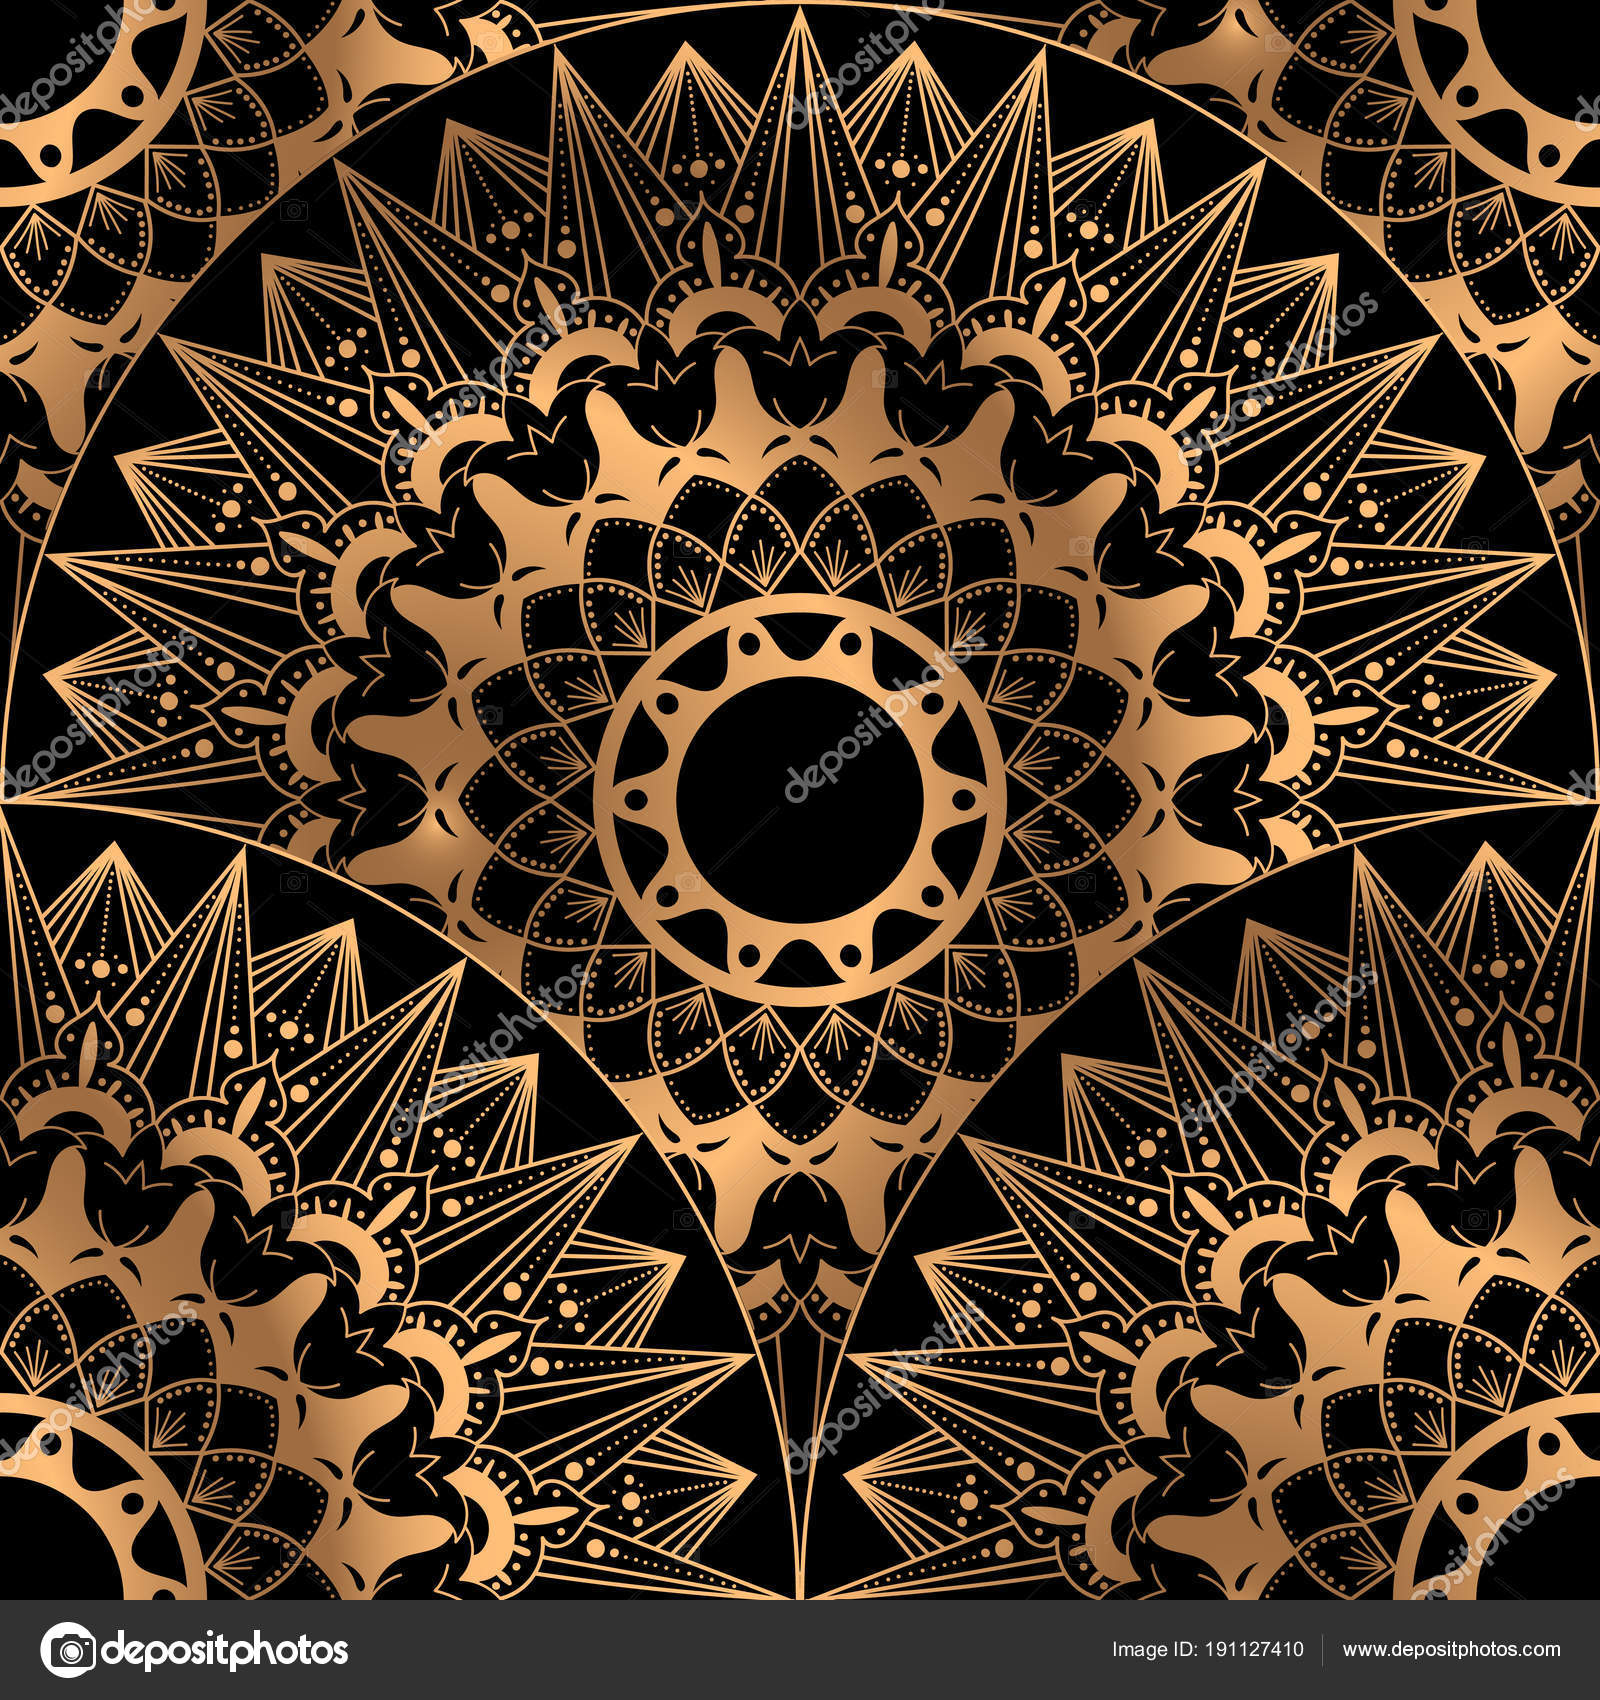 Gold Black Scale Pattern Seamless Design Indian Mandala Ornament For Wedding Party Invitation Spa Beauty Yoga Salon Wallpaper Bridal Fashion And